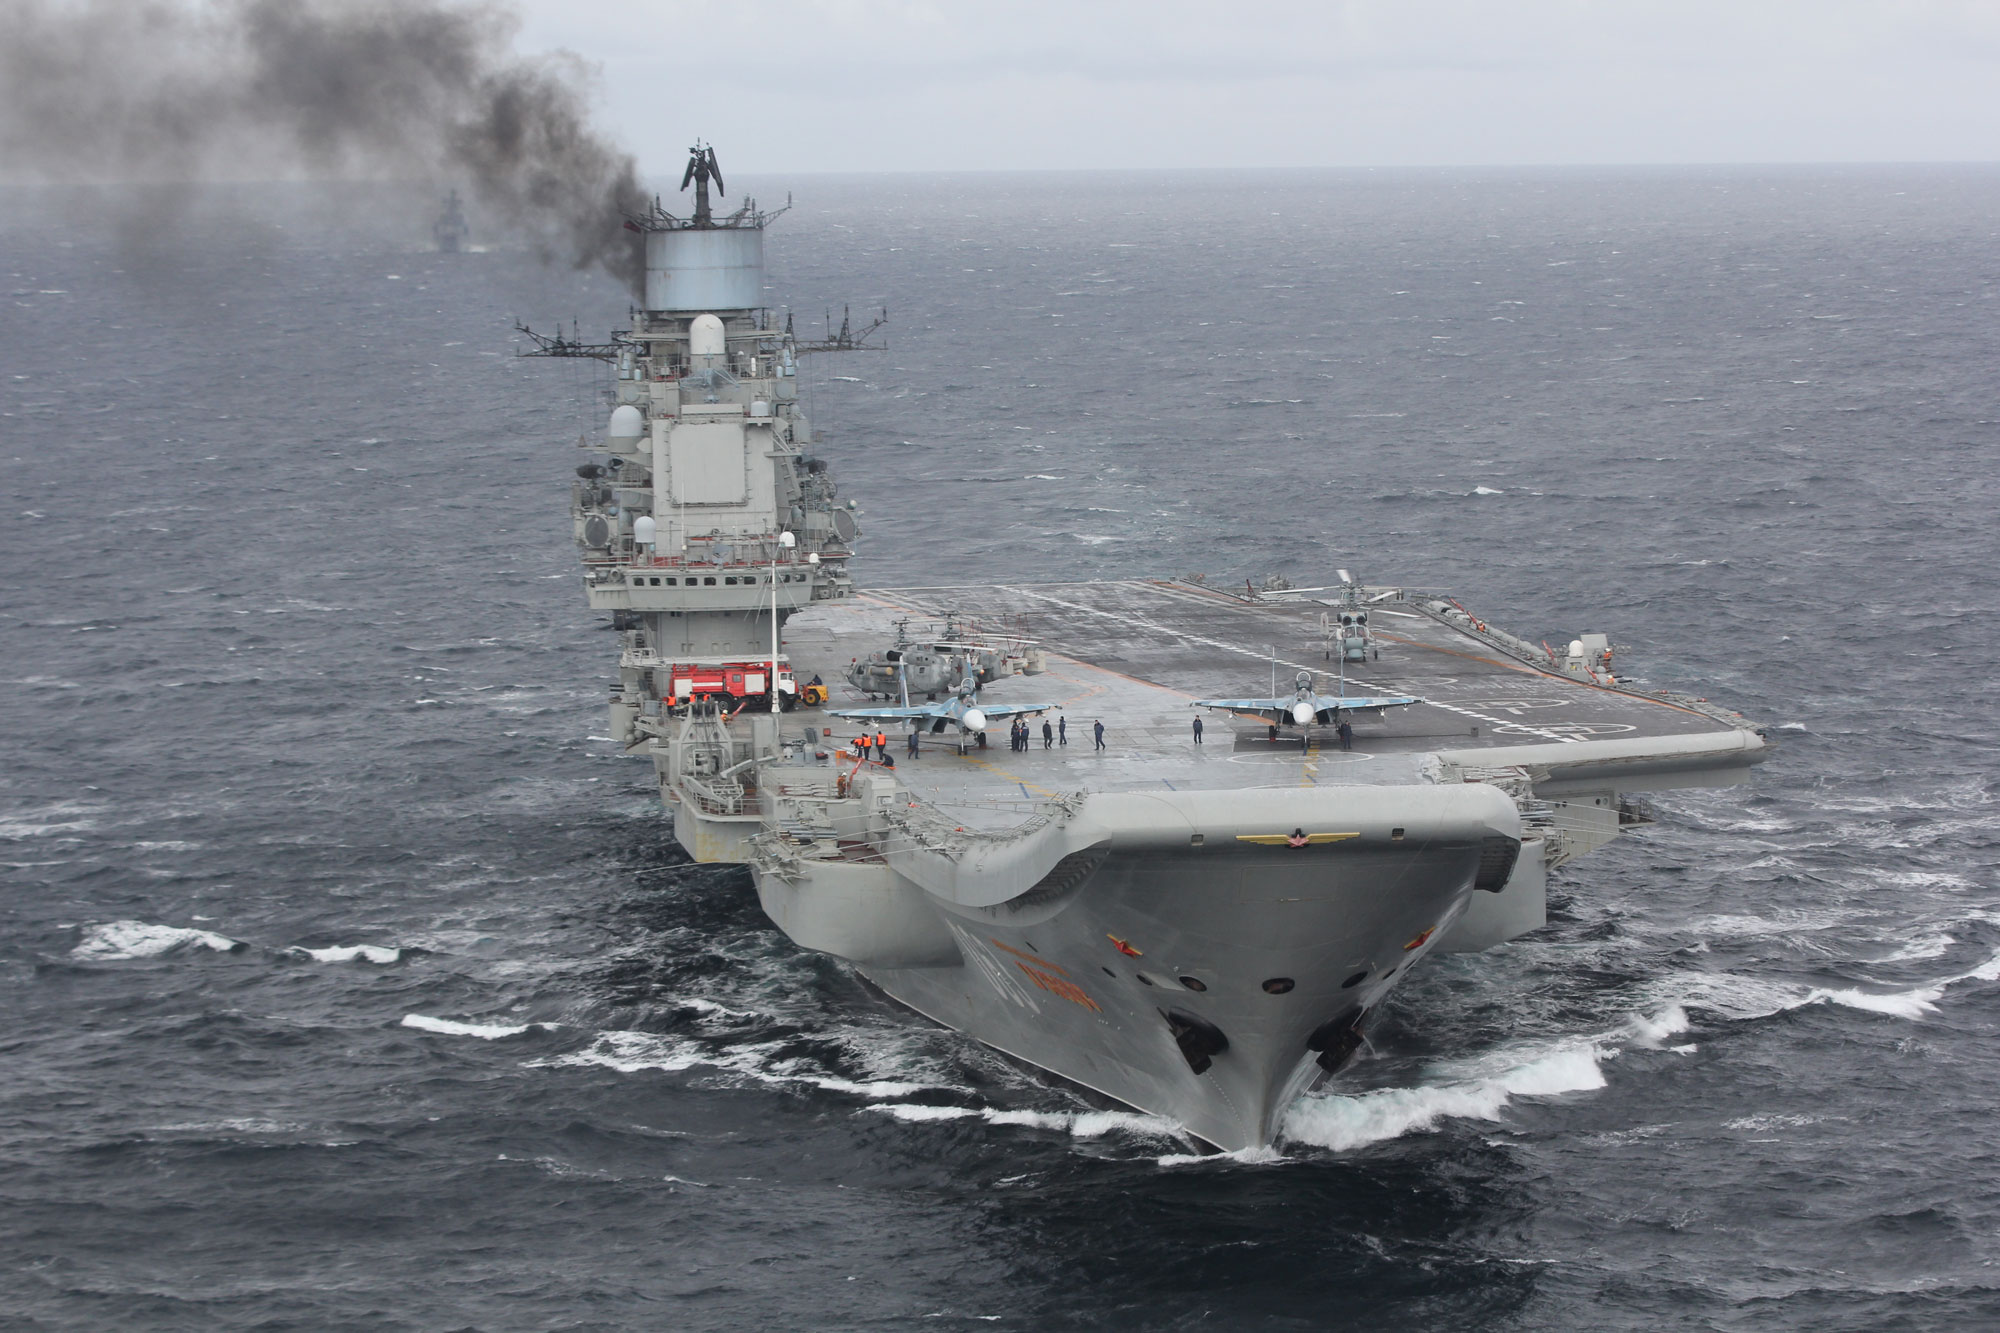 Aircraft Carrier Admiral Kuznetsov: News #1 - Page 30 23-4426801-16-1218f